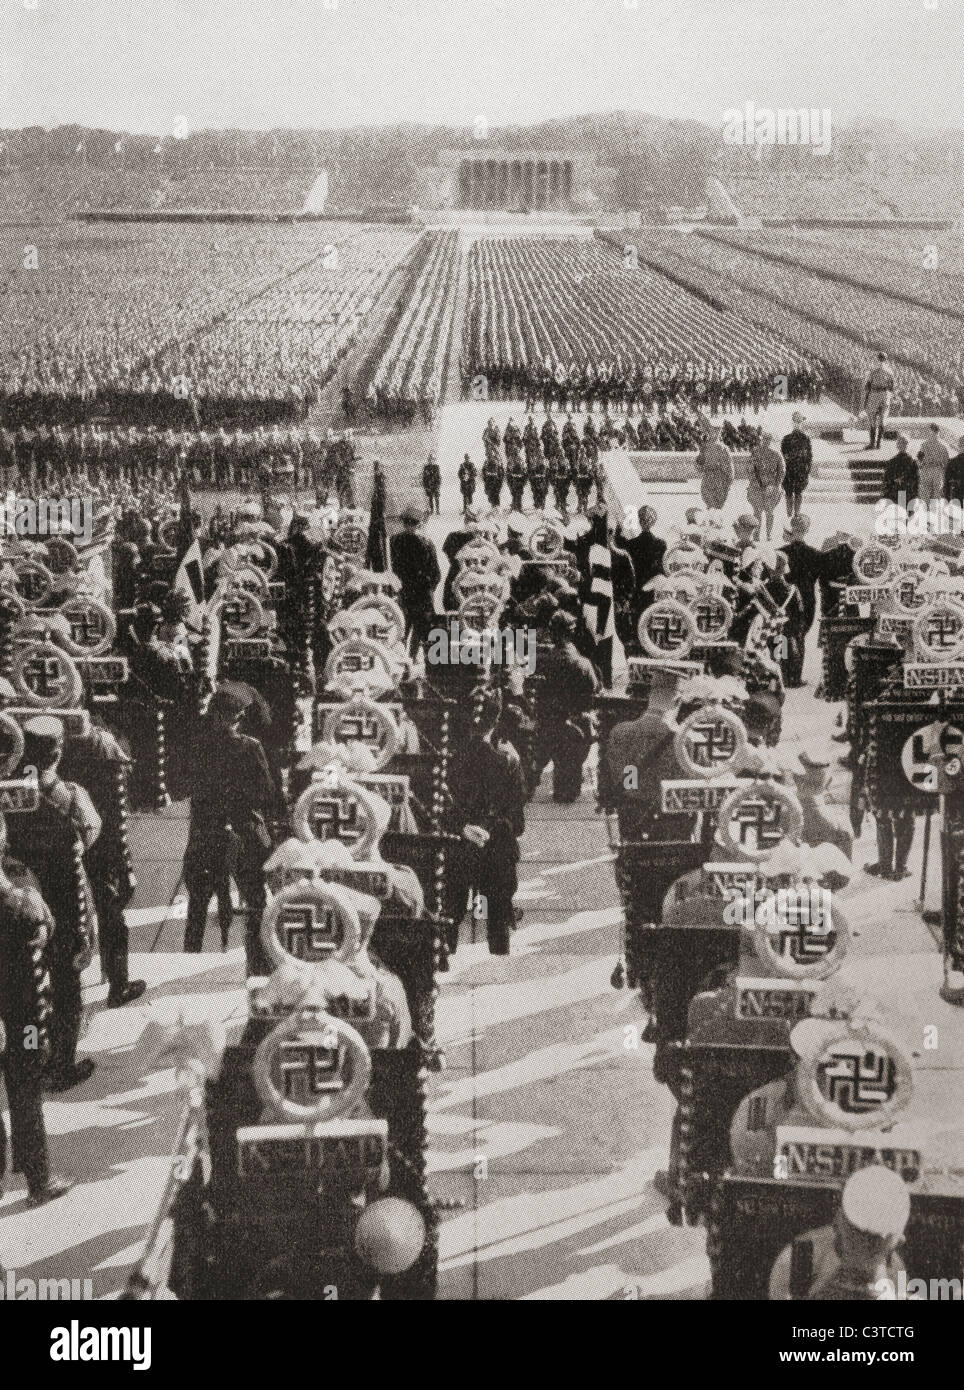 Overview of the mass roll call of SA, SS, and NSKK troops at the 1935 Nazi Party Day, Luitpold Arena, Nuremberg, - Stock Image